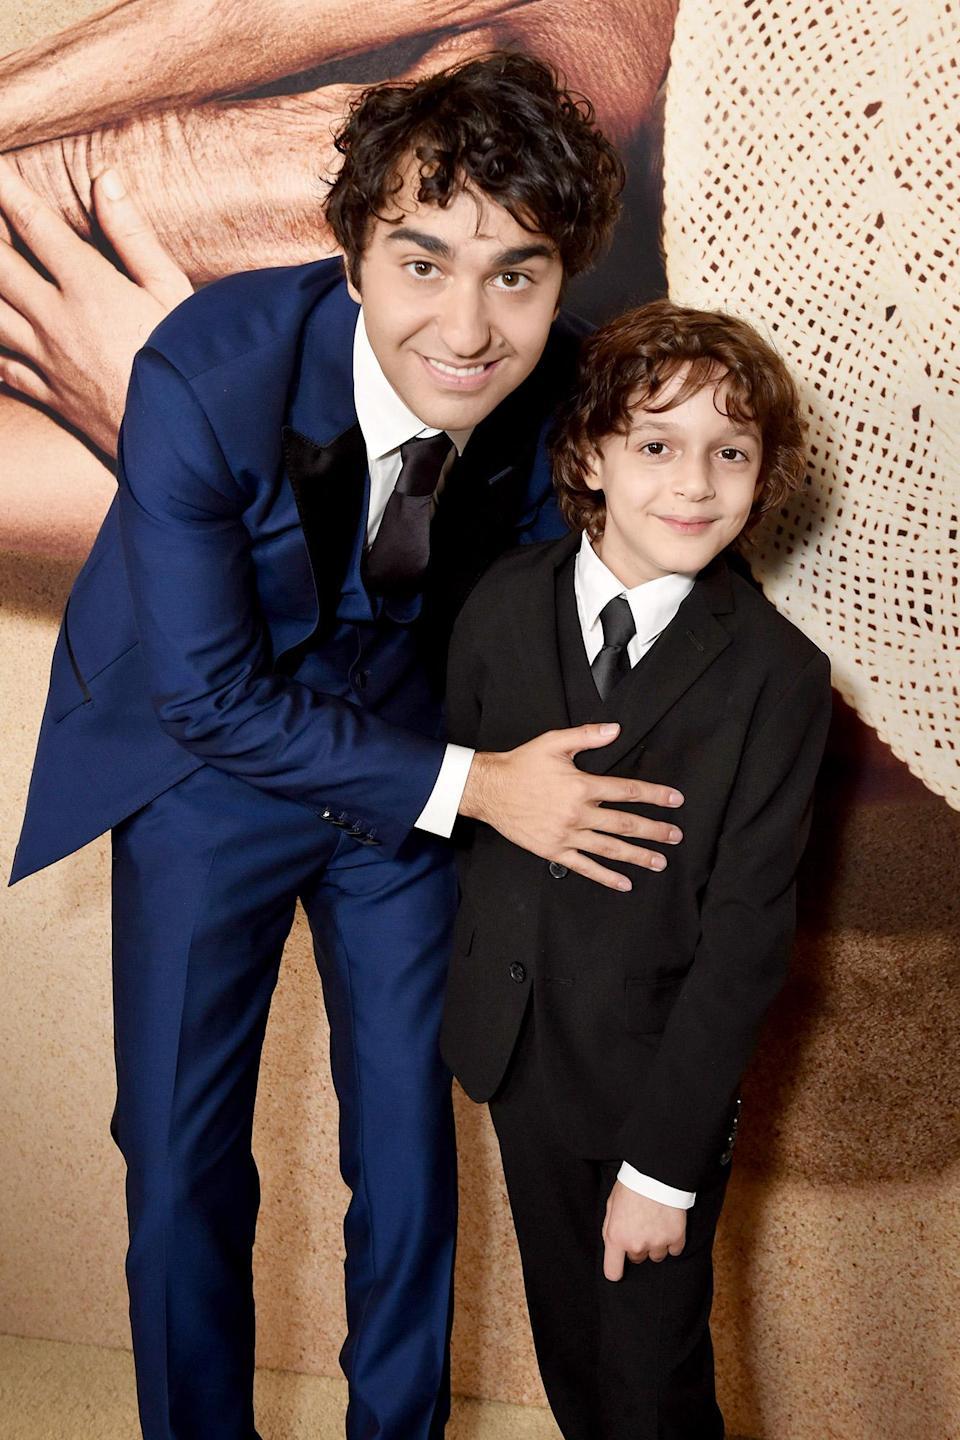 <p>Alex Wolff and Nolan River attend the <em>Old</em> world premiere, presented by Universal Pictures, at Jazz at Lincoln Center on July 19 in N.Y.C.</p>